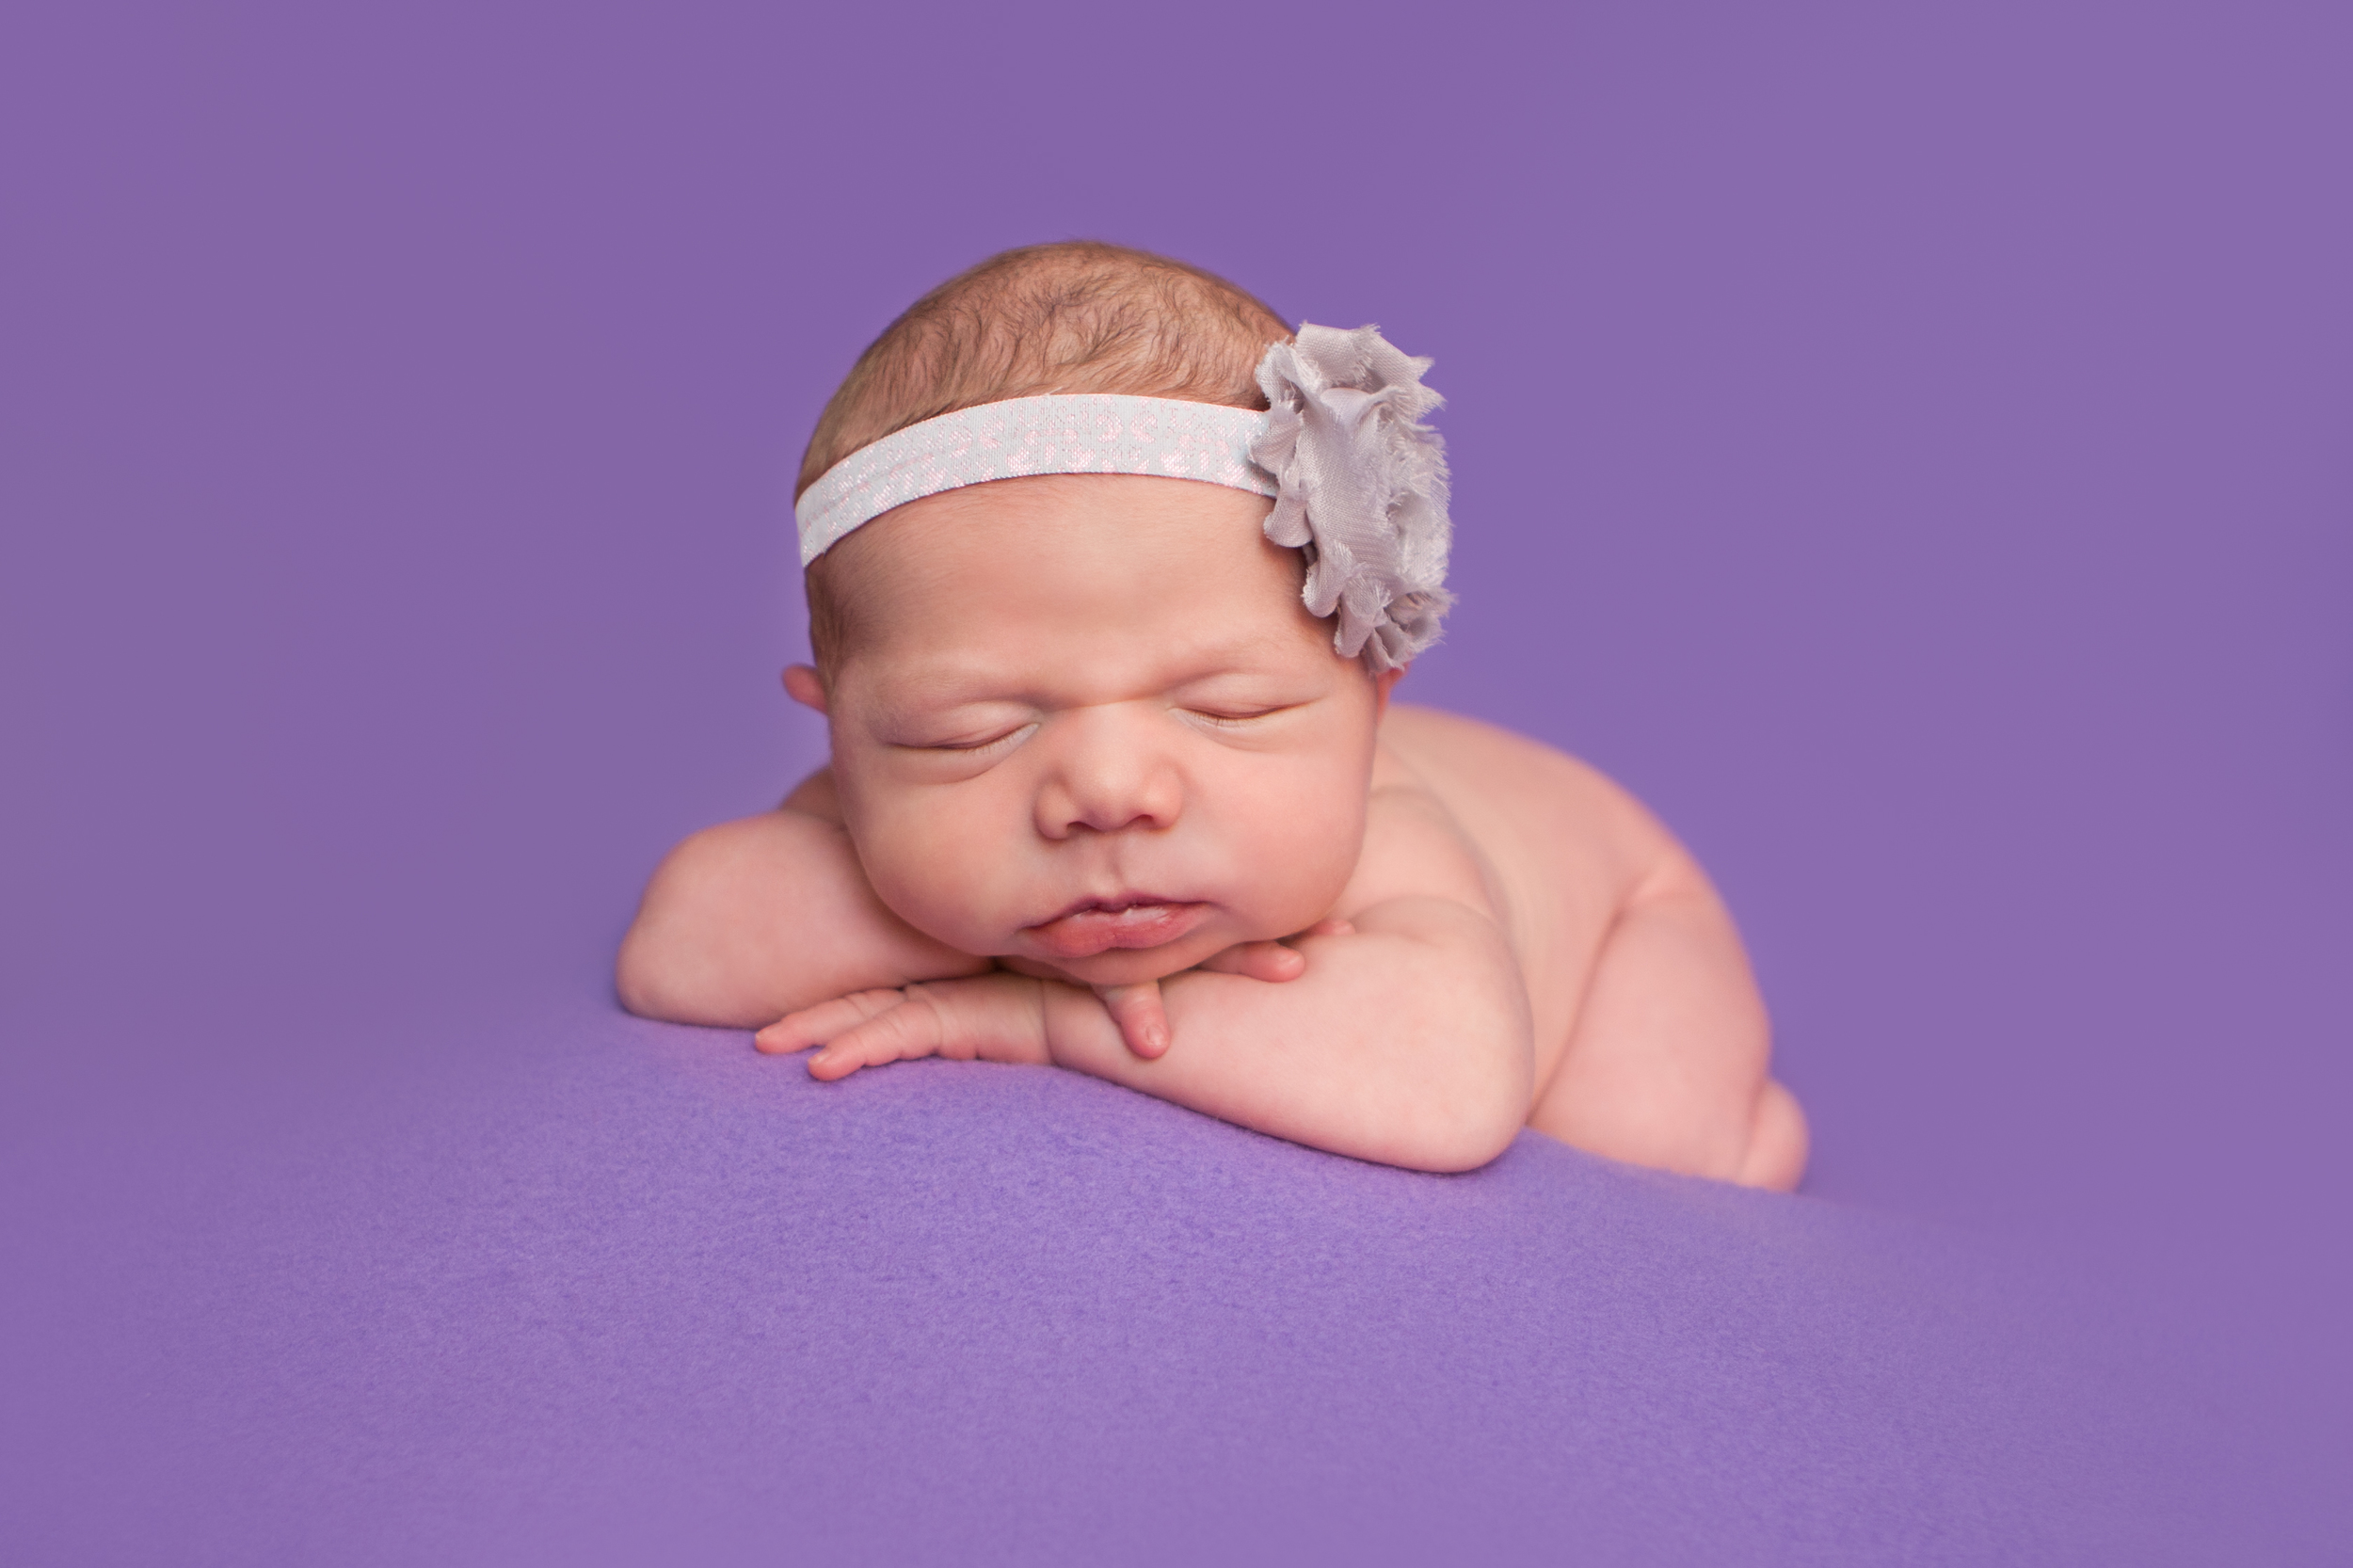 Newborn baby girl with shabby chic headband grey purple,   head on wrists chin on hands bean bag pose on purple fabric backdrop, Westchester County, New York Newborn Photographer, Amanda Noelle Photography.